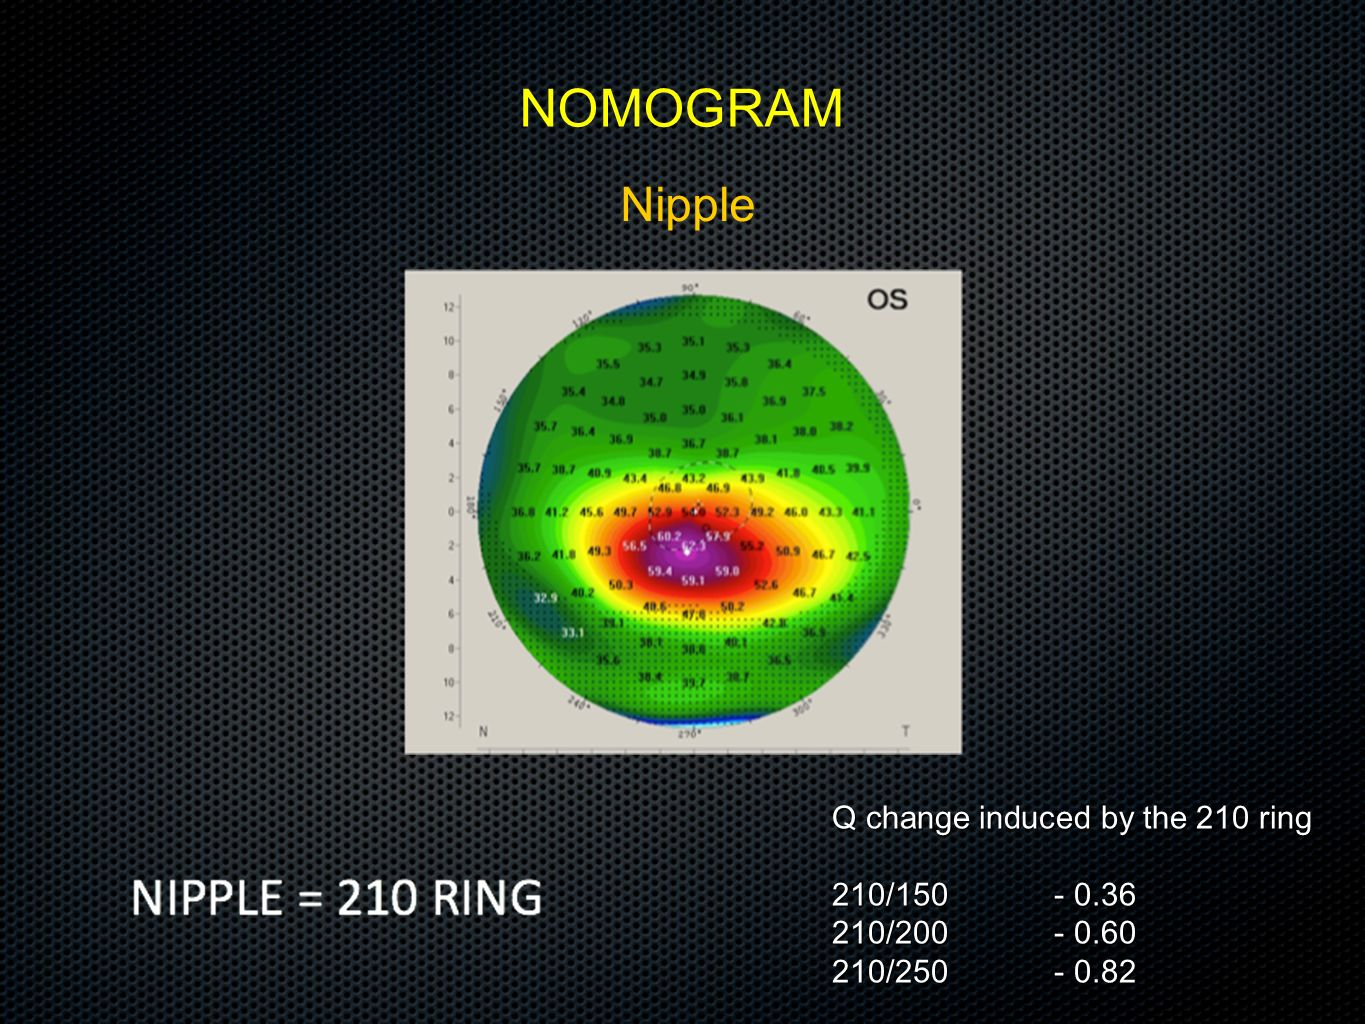 Q change induced by the 210 ring